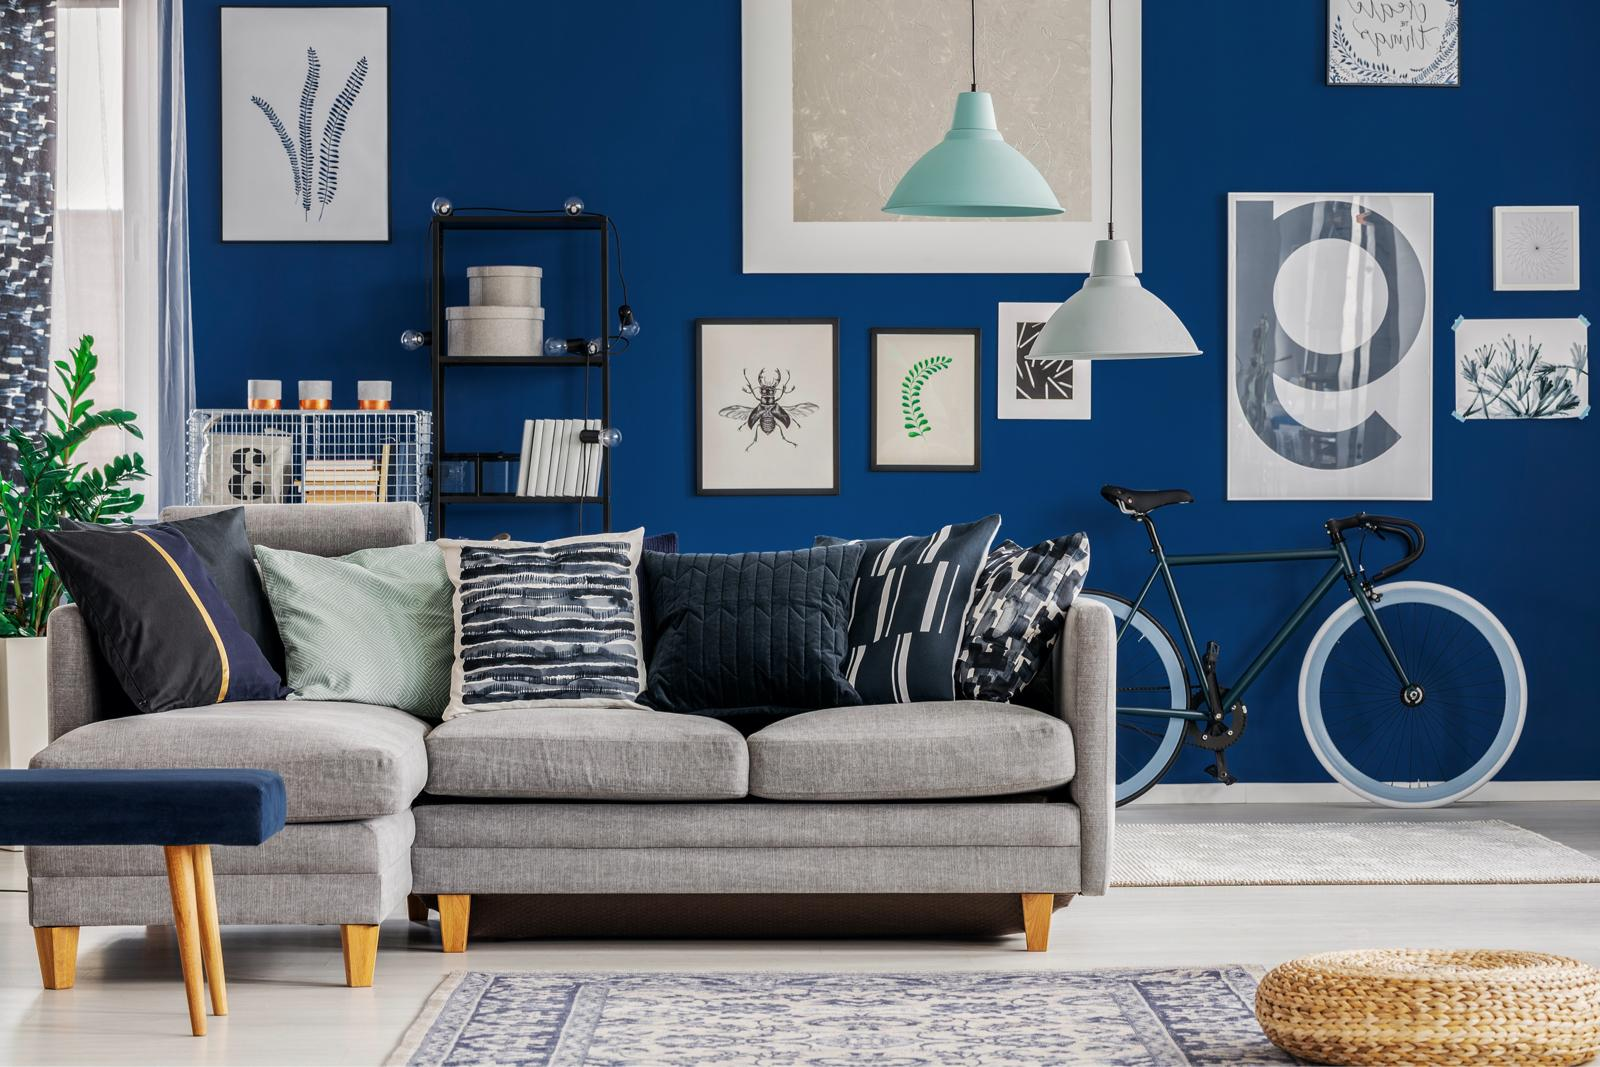 Maximalism Style And Why We Love It 4, Paneling Factory Of Virginia